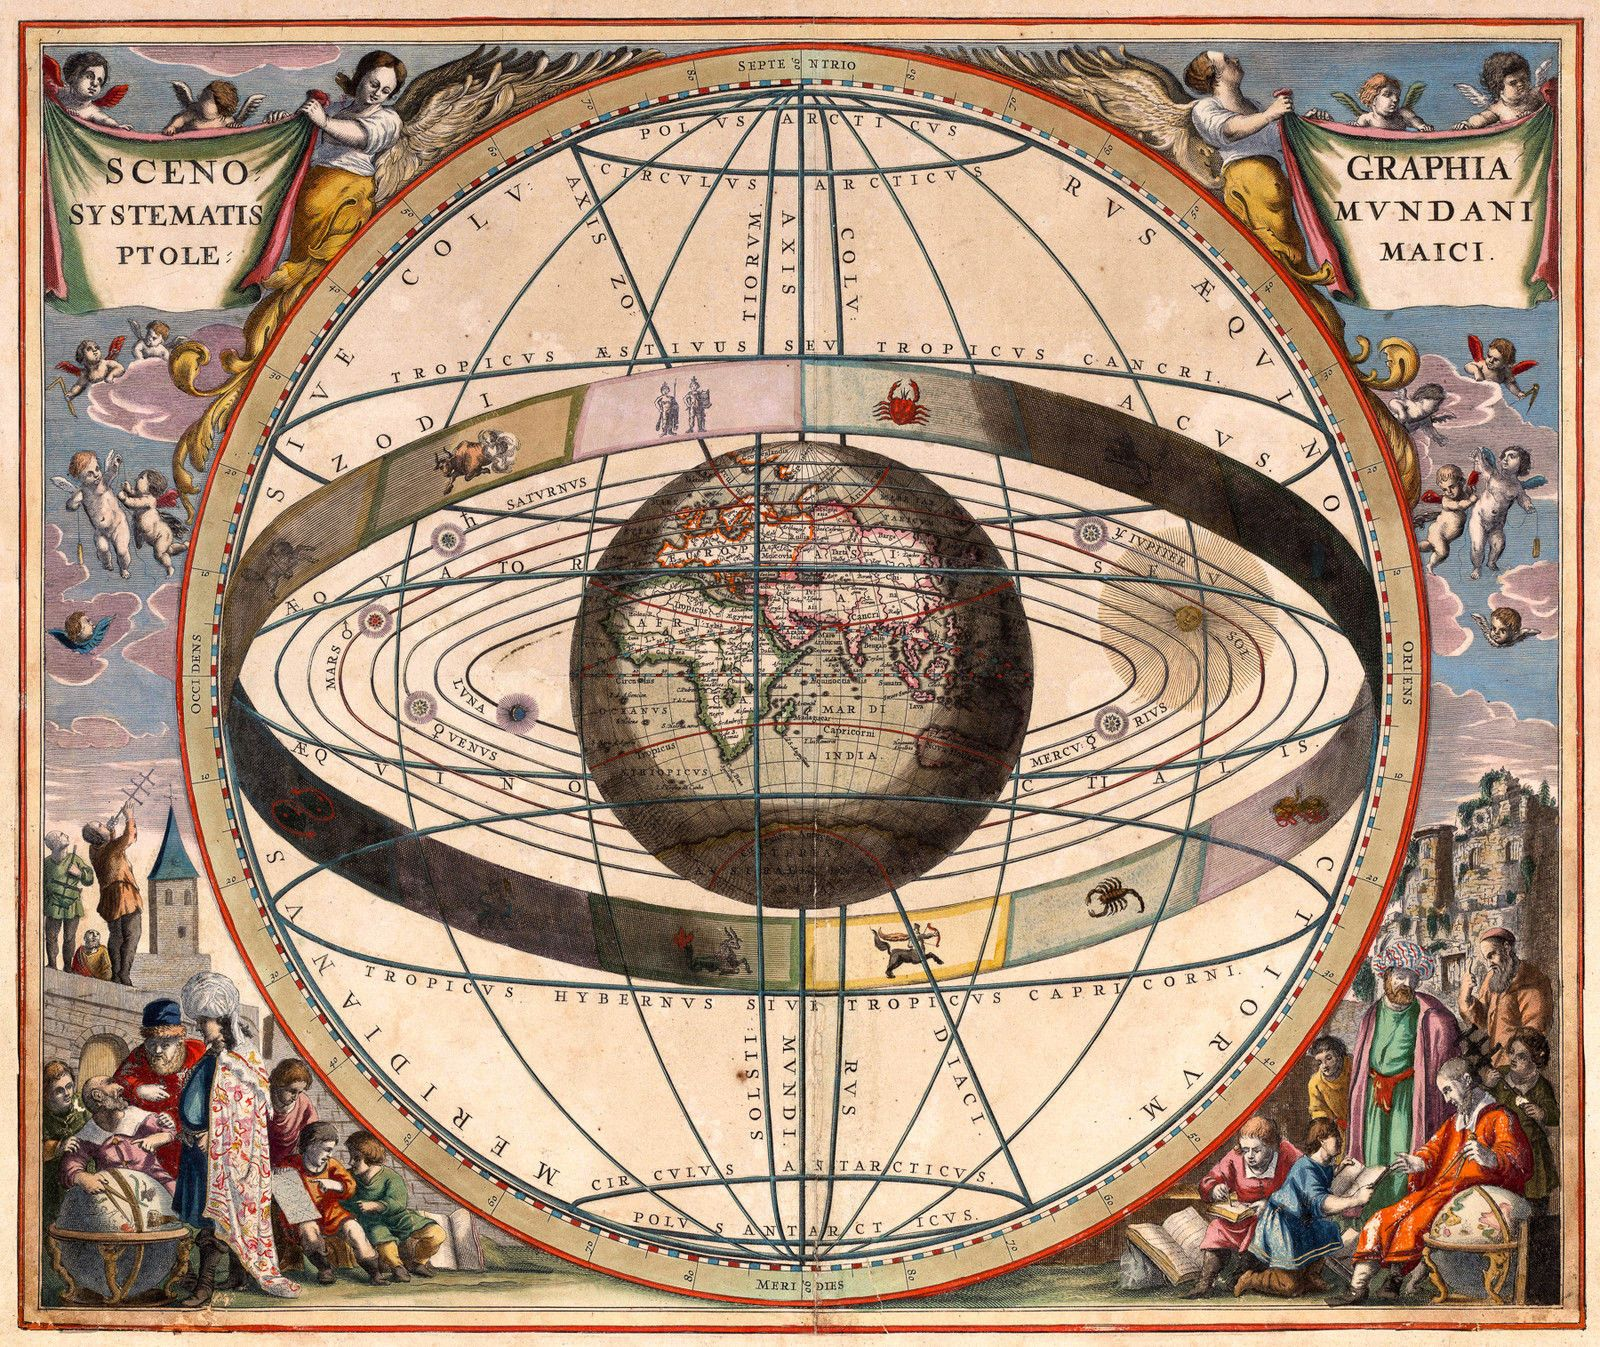 Antique astrology world map vintage 1660 fade resistant hd print antique astrology world map vintage 1660 fade resistant hd print or canvas in gumiabroncs Gallery